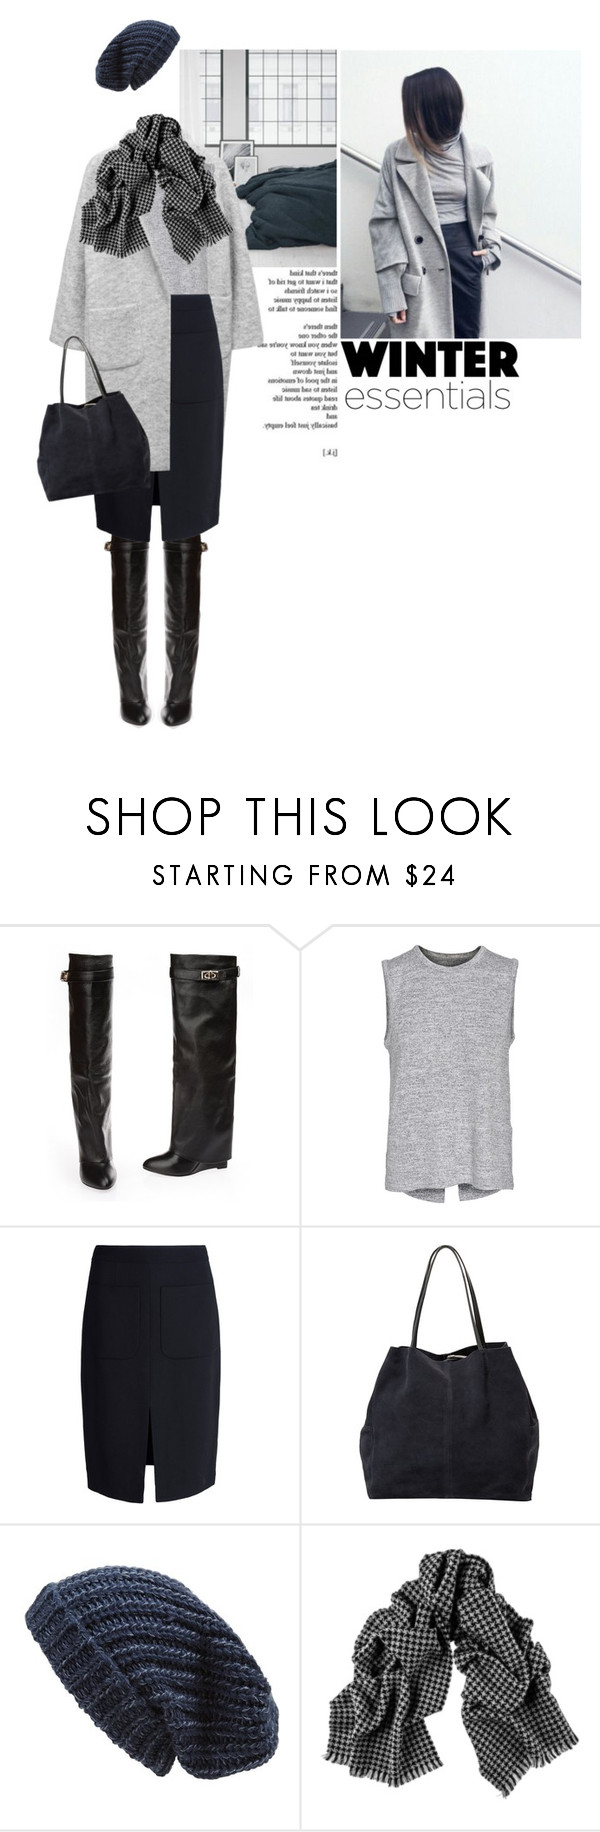 """""""winter chic"""" by a-a-nica ❤ liked on Polyvore featuring Ganni, rag & bone, L'Agence, MANGO and Phase 3"""